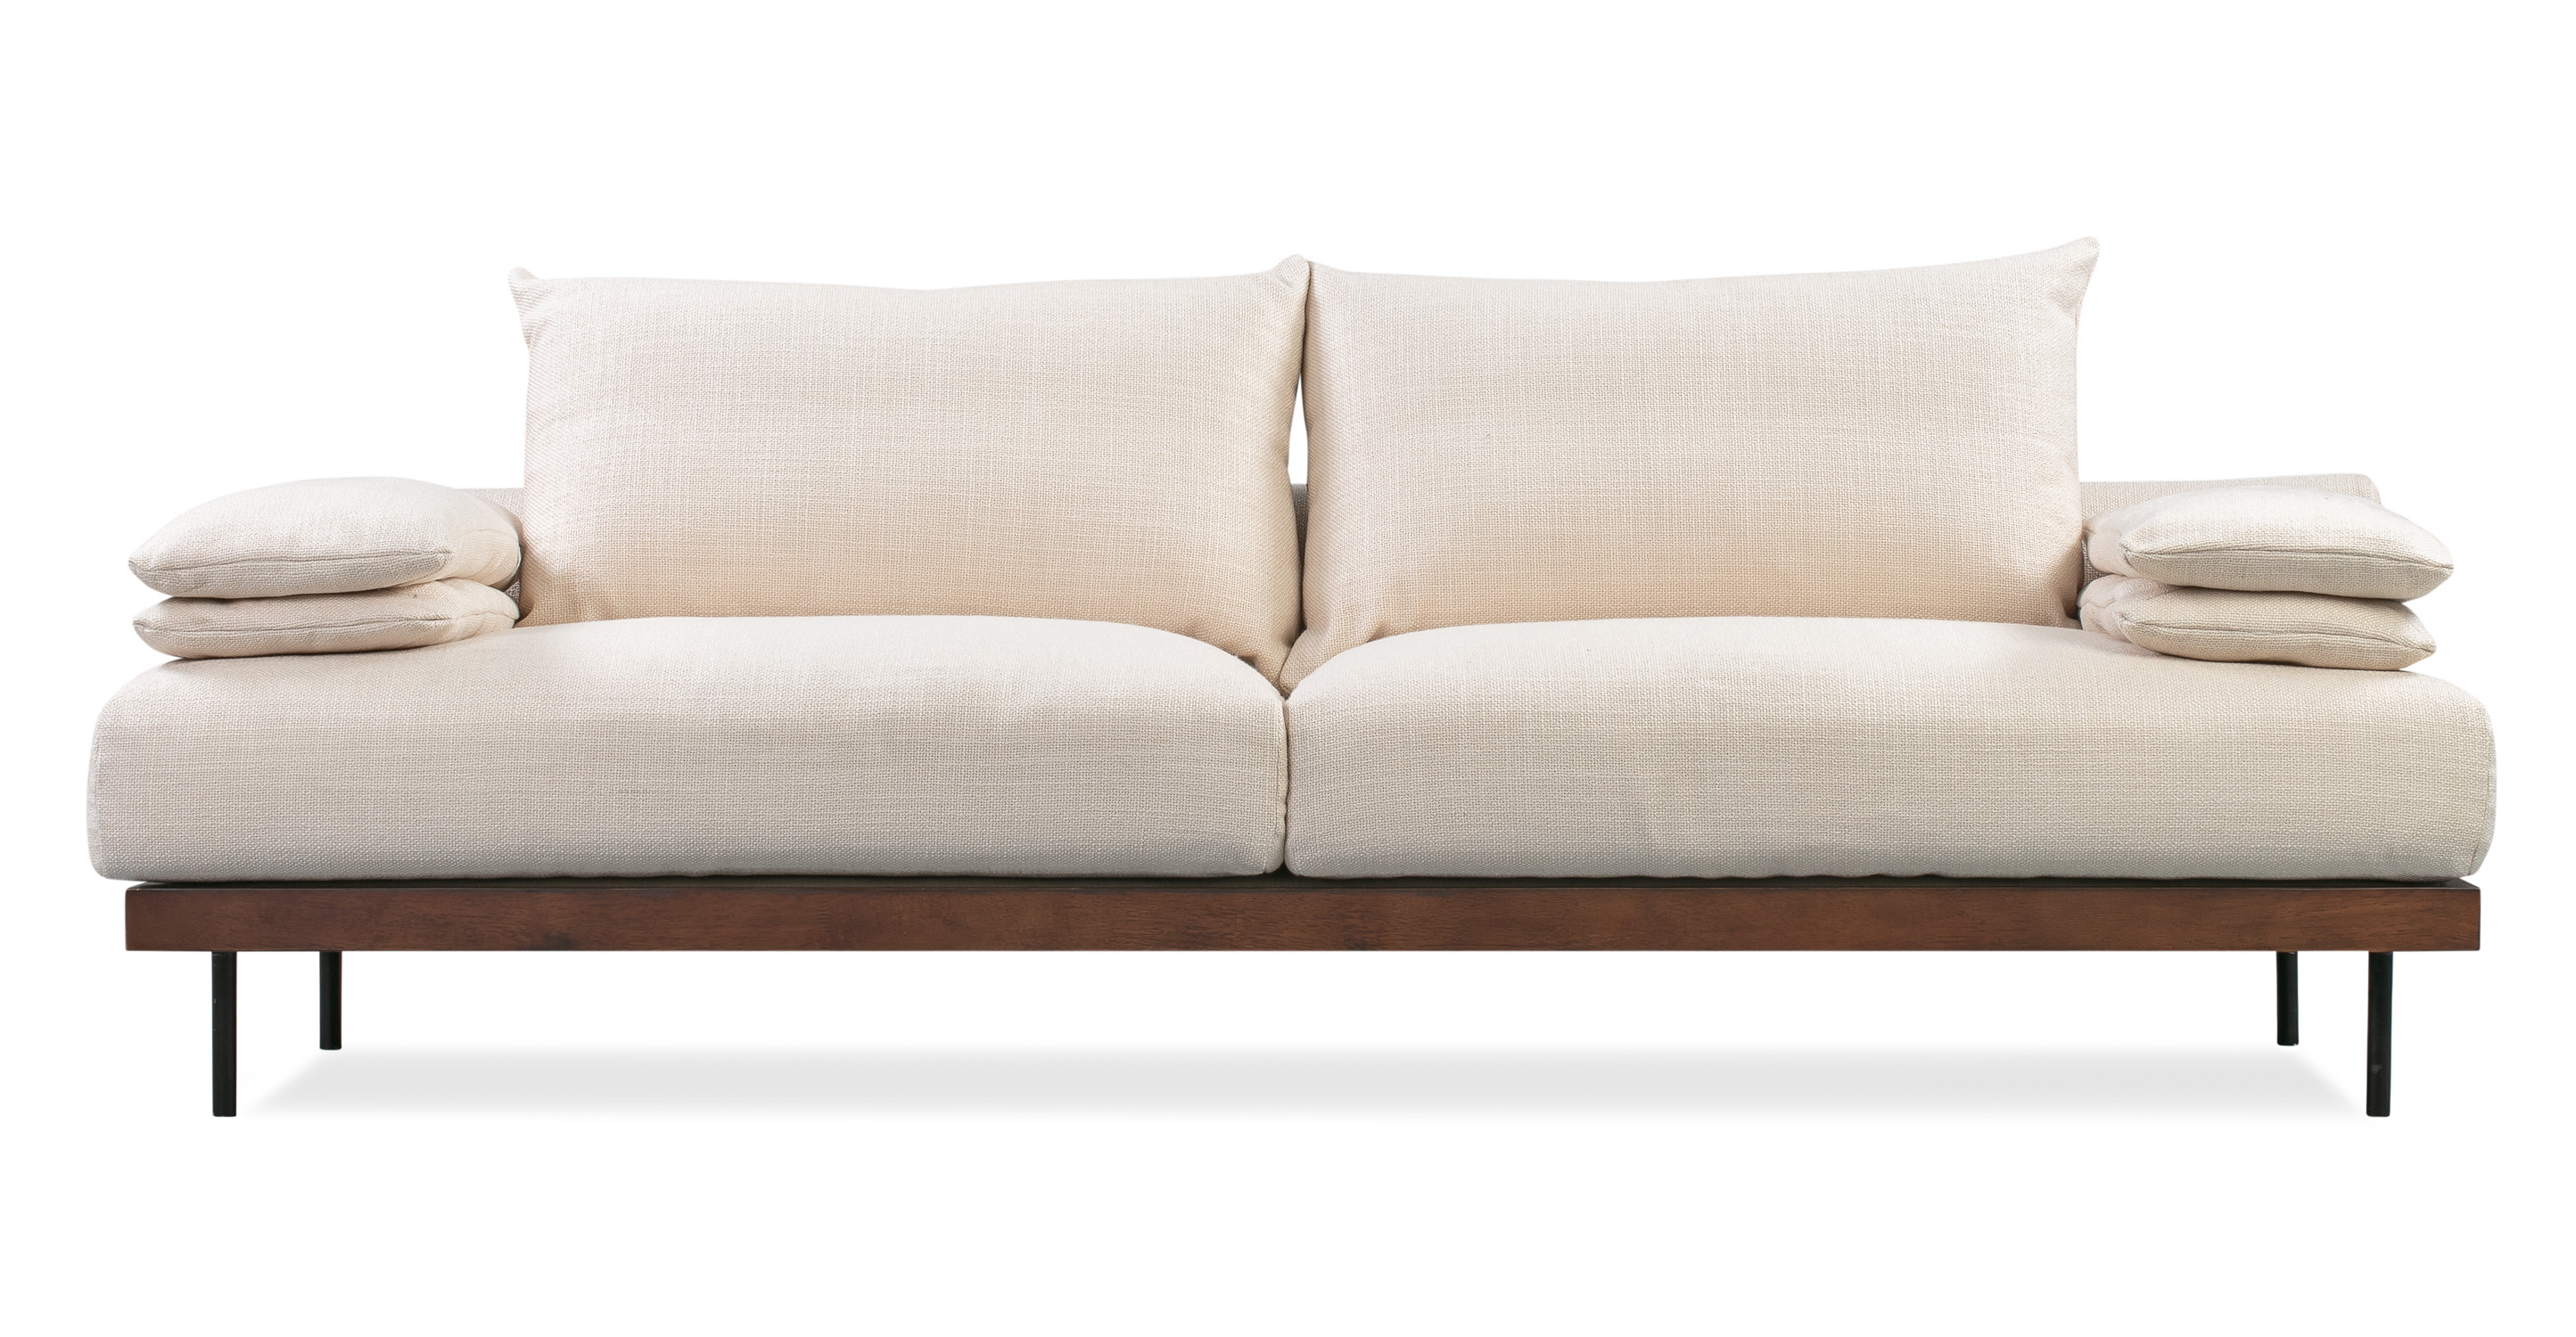 "Malibu 91"" Fabric Sofa Sleeper, Pearl"